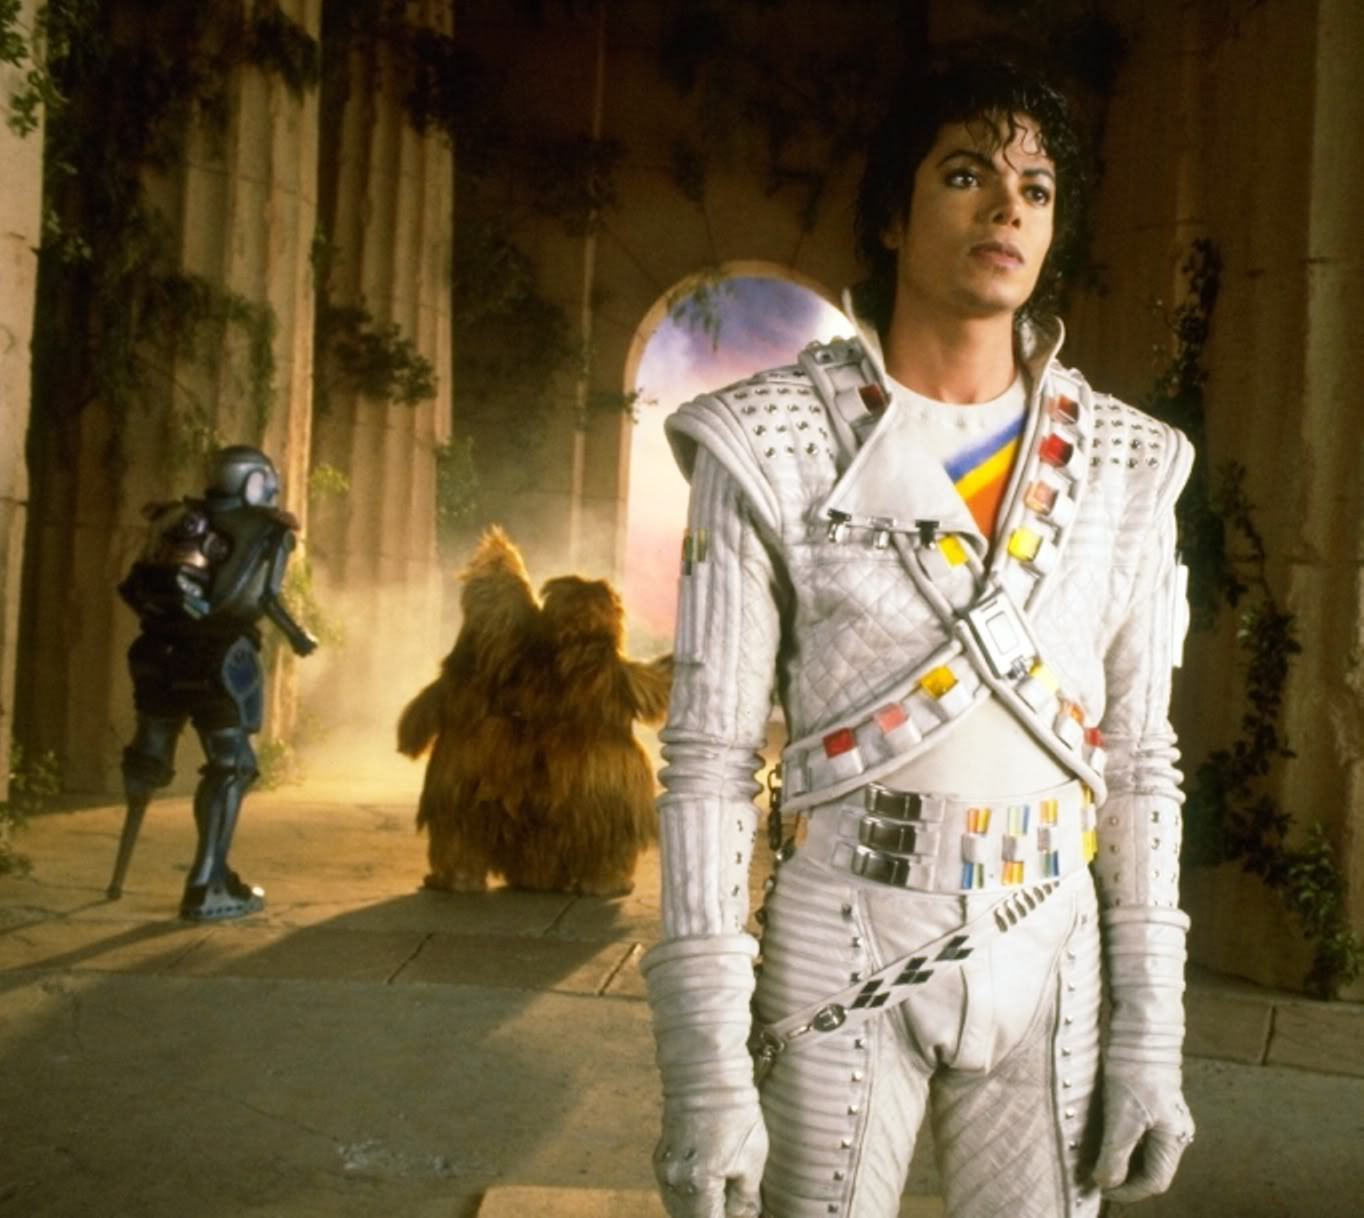 Michael Jackson 1985: The Movie Rat